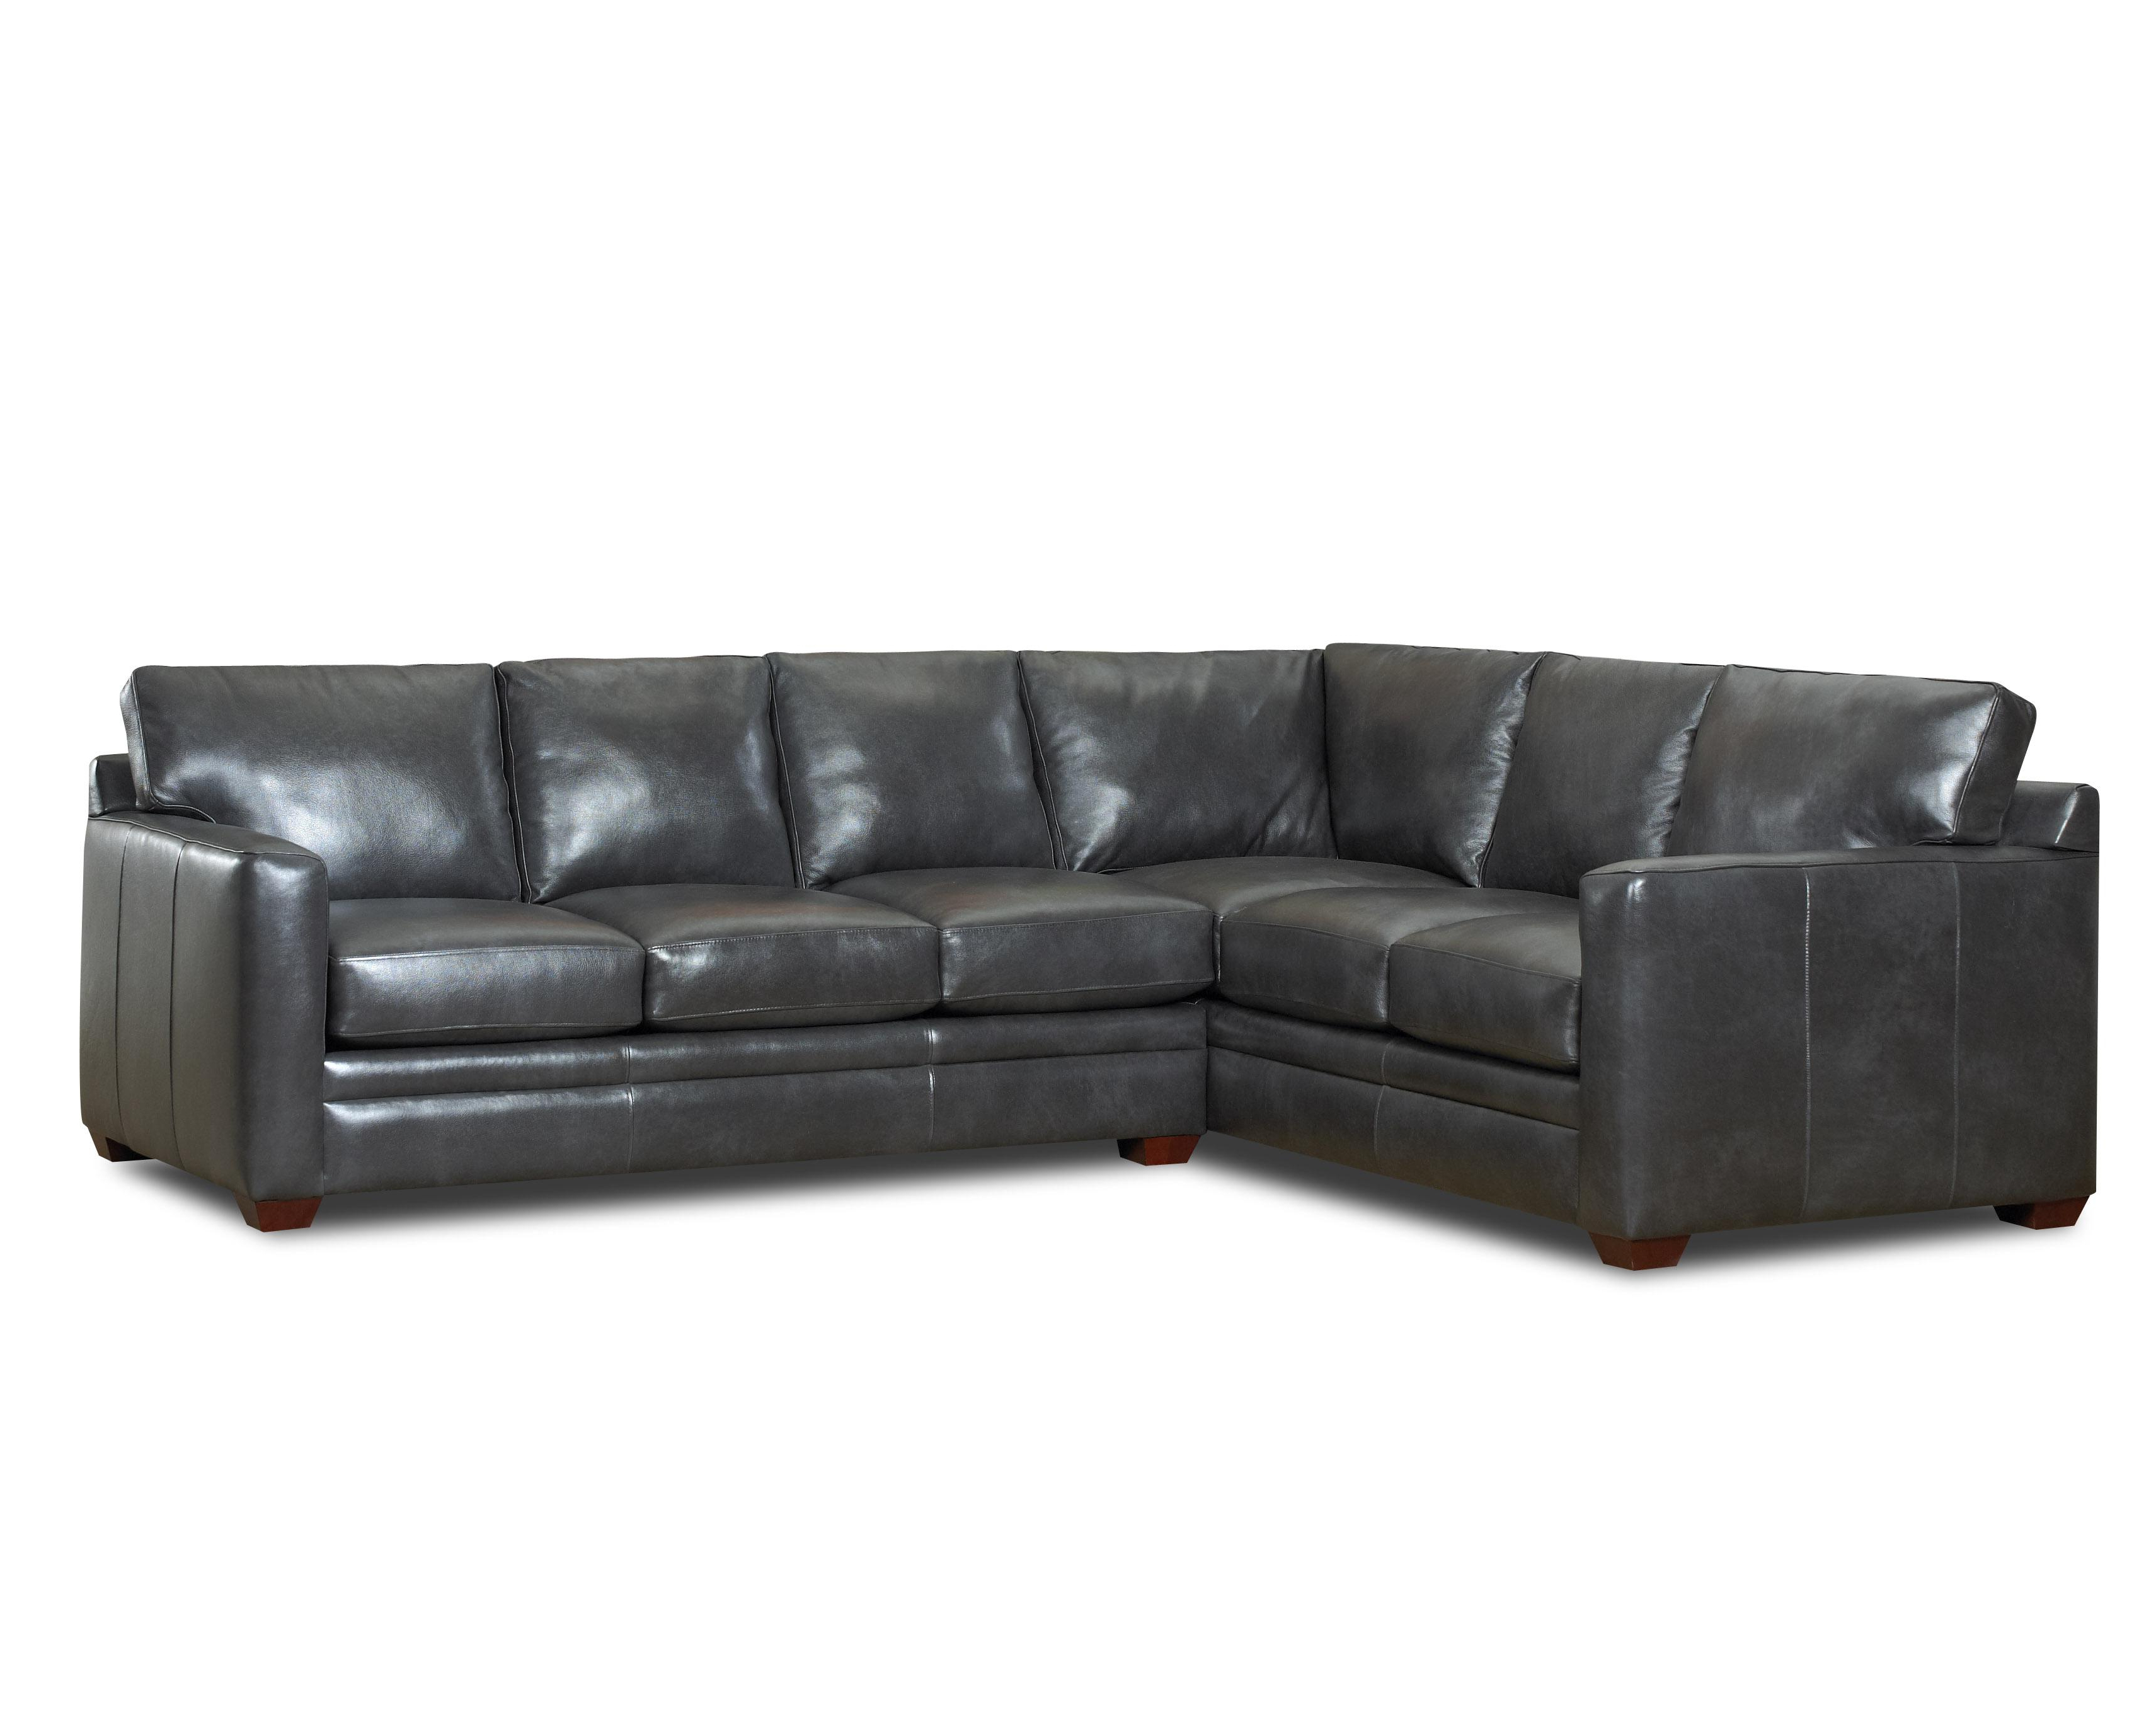 2019 Declan 3 Piece Power Reclining Sectionals With Left Facing Console Loveseat Regarding Unique Klaussner Leather Sectional Sofa – Sofas (View 1 of 20)